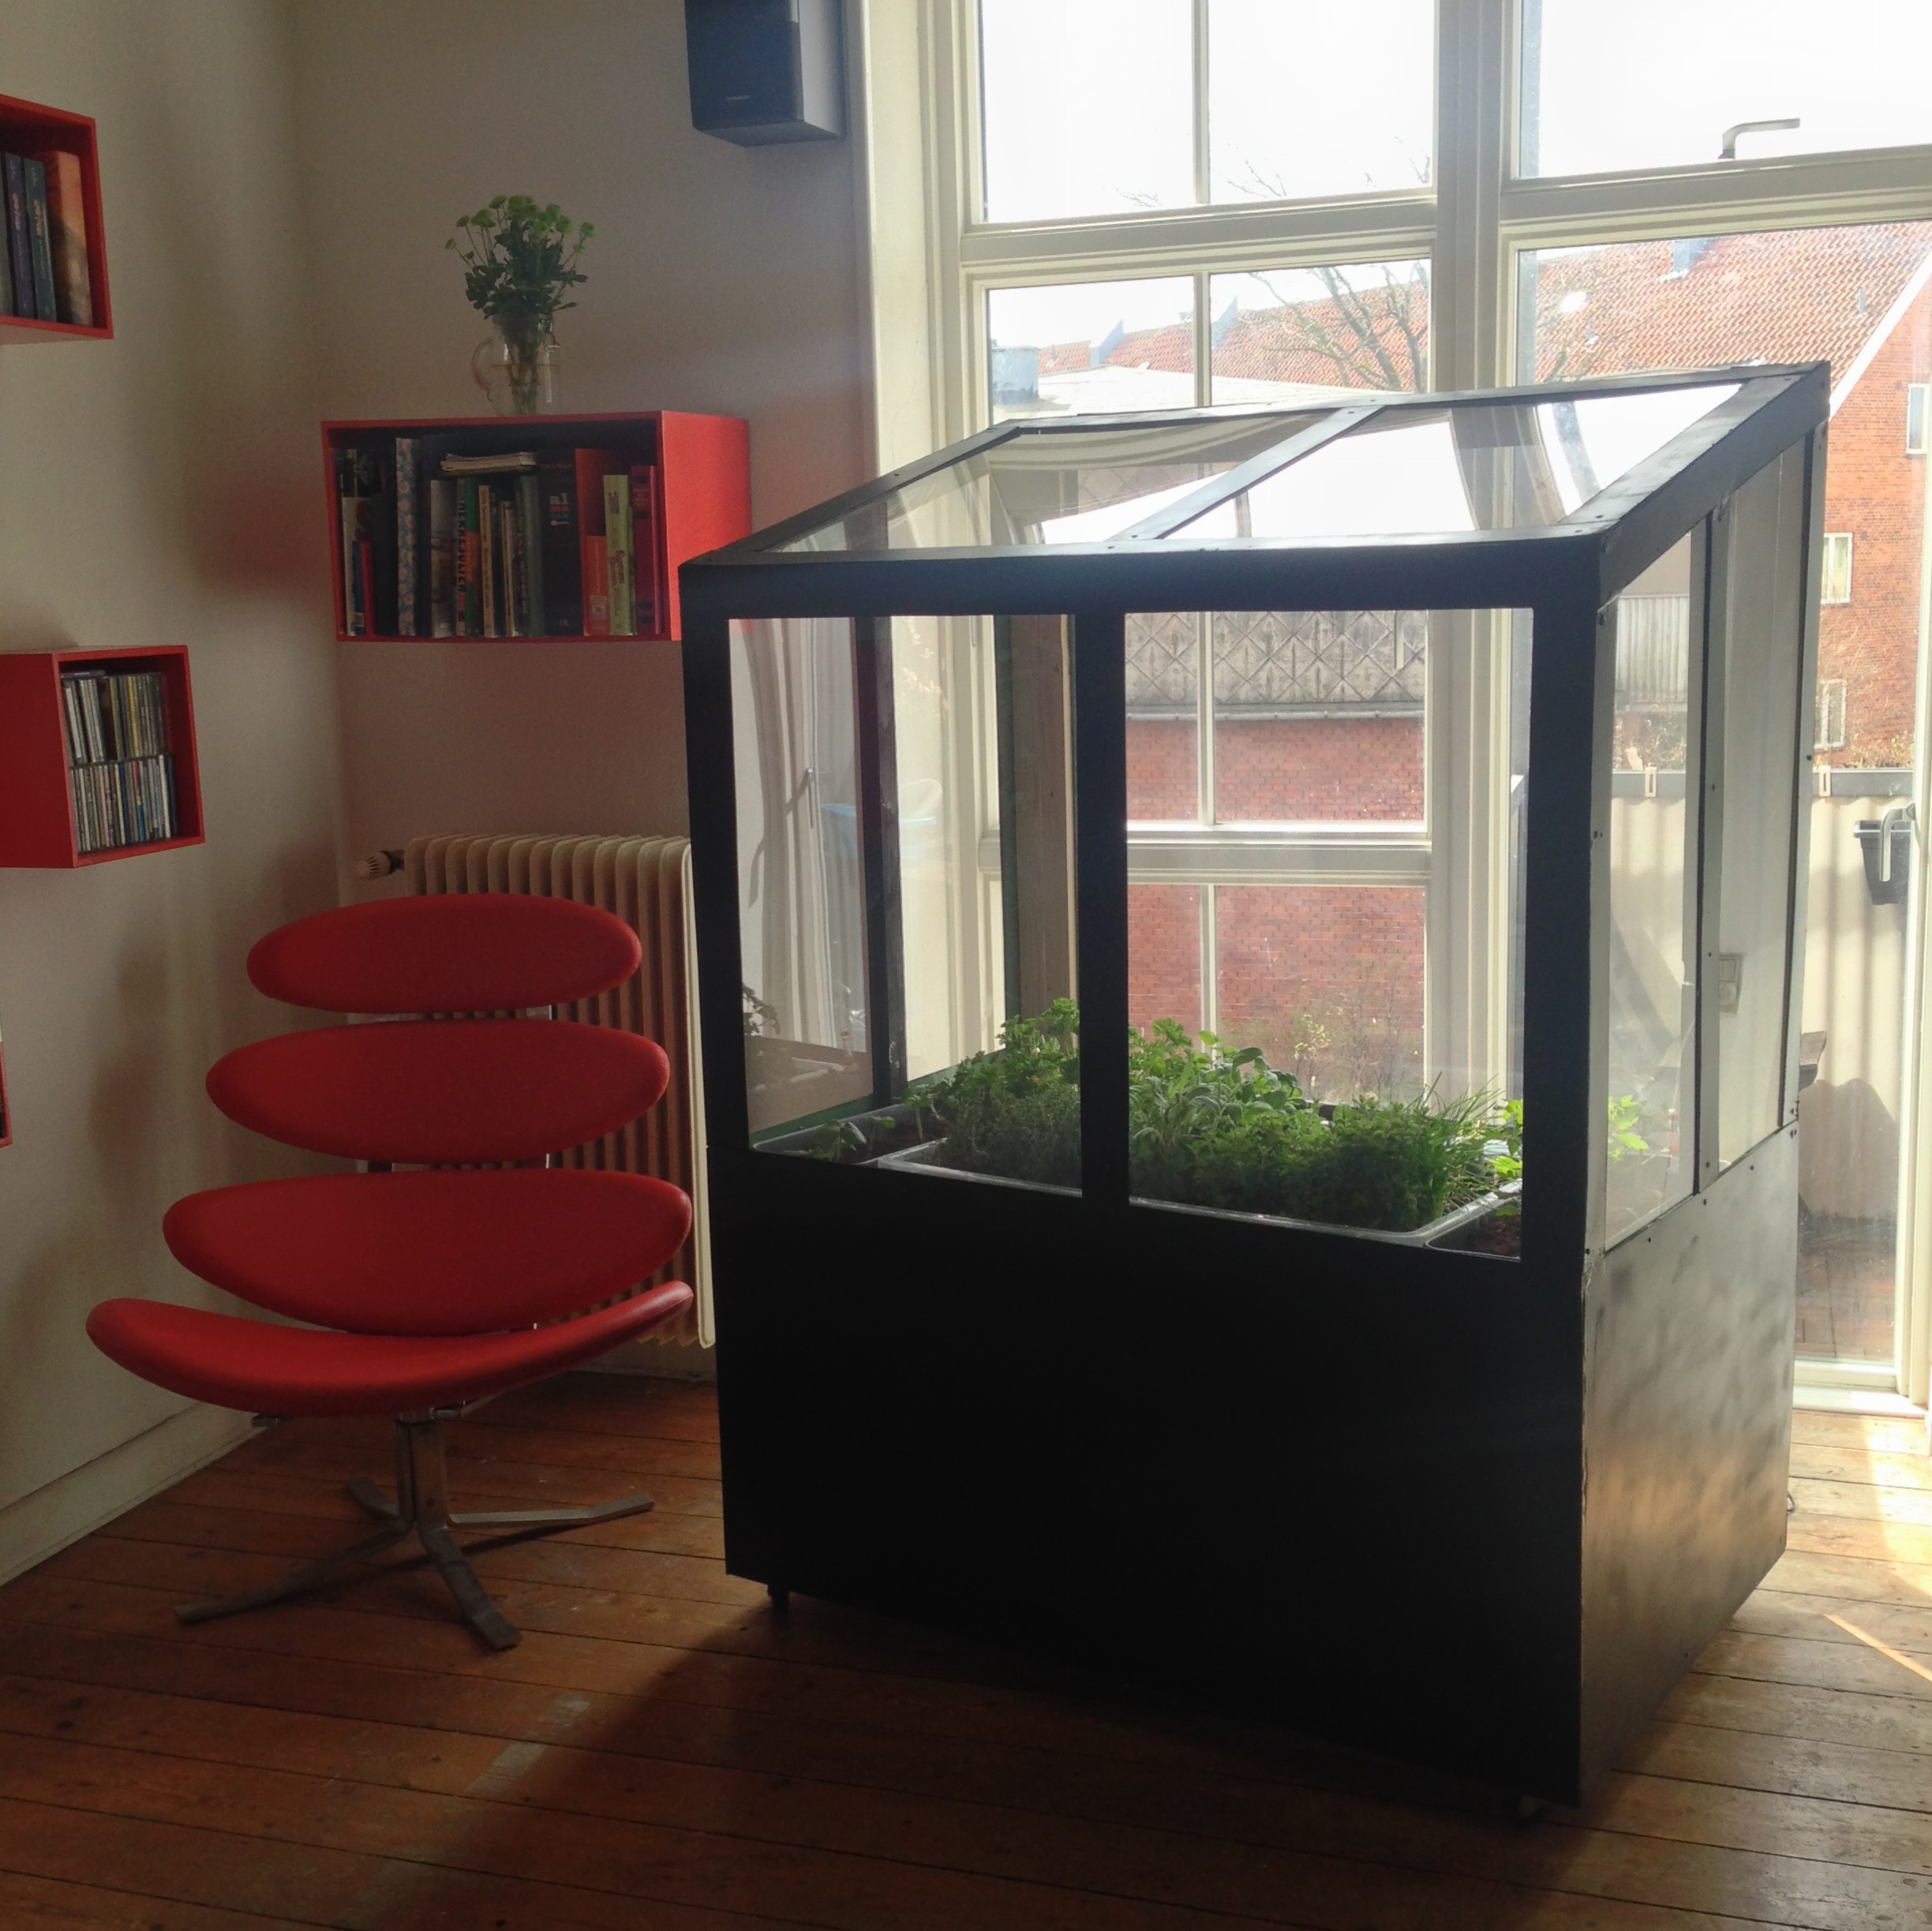 Picture of: Indendors Drivhus Med Aquaponic